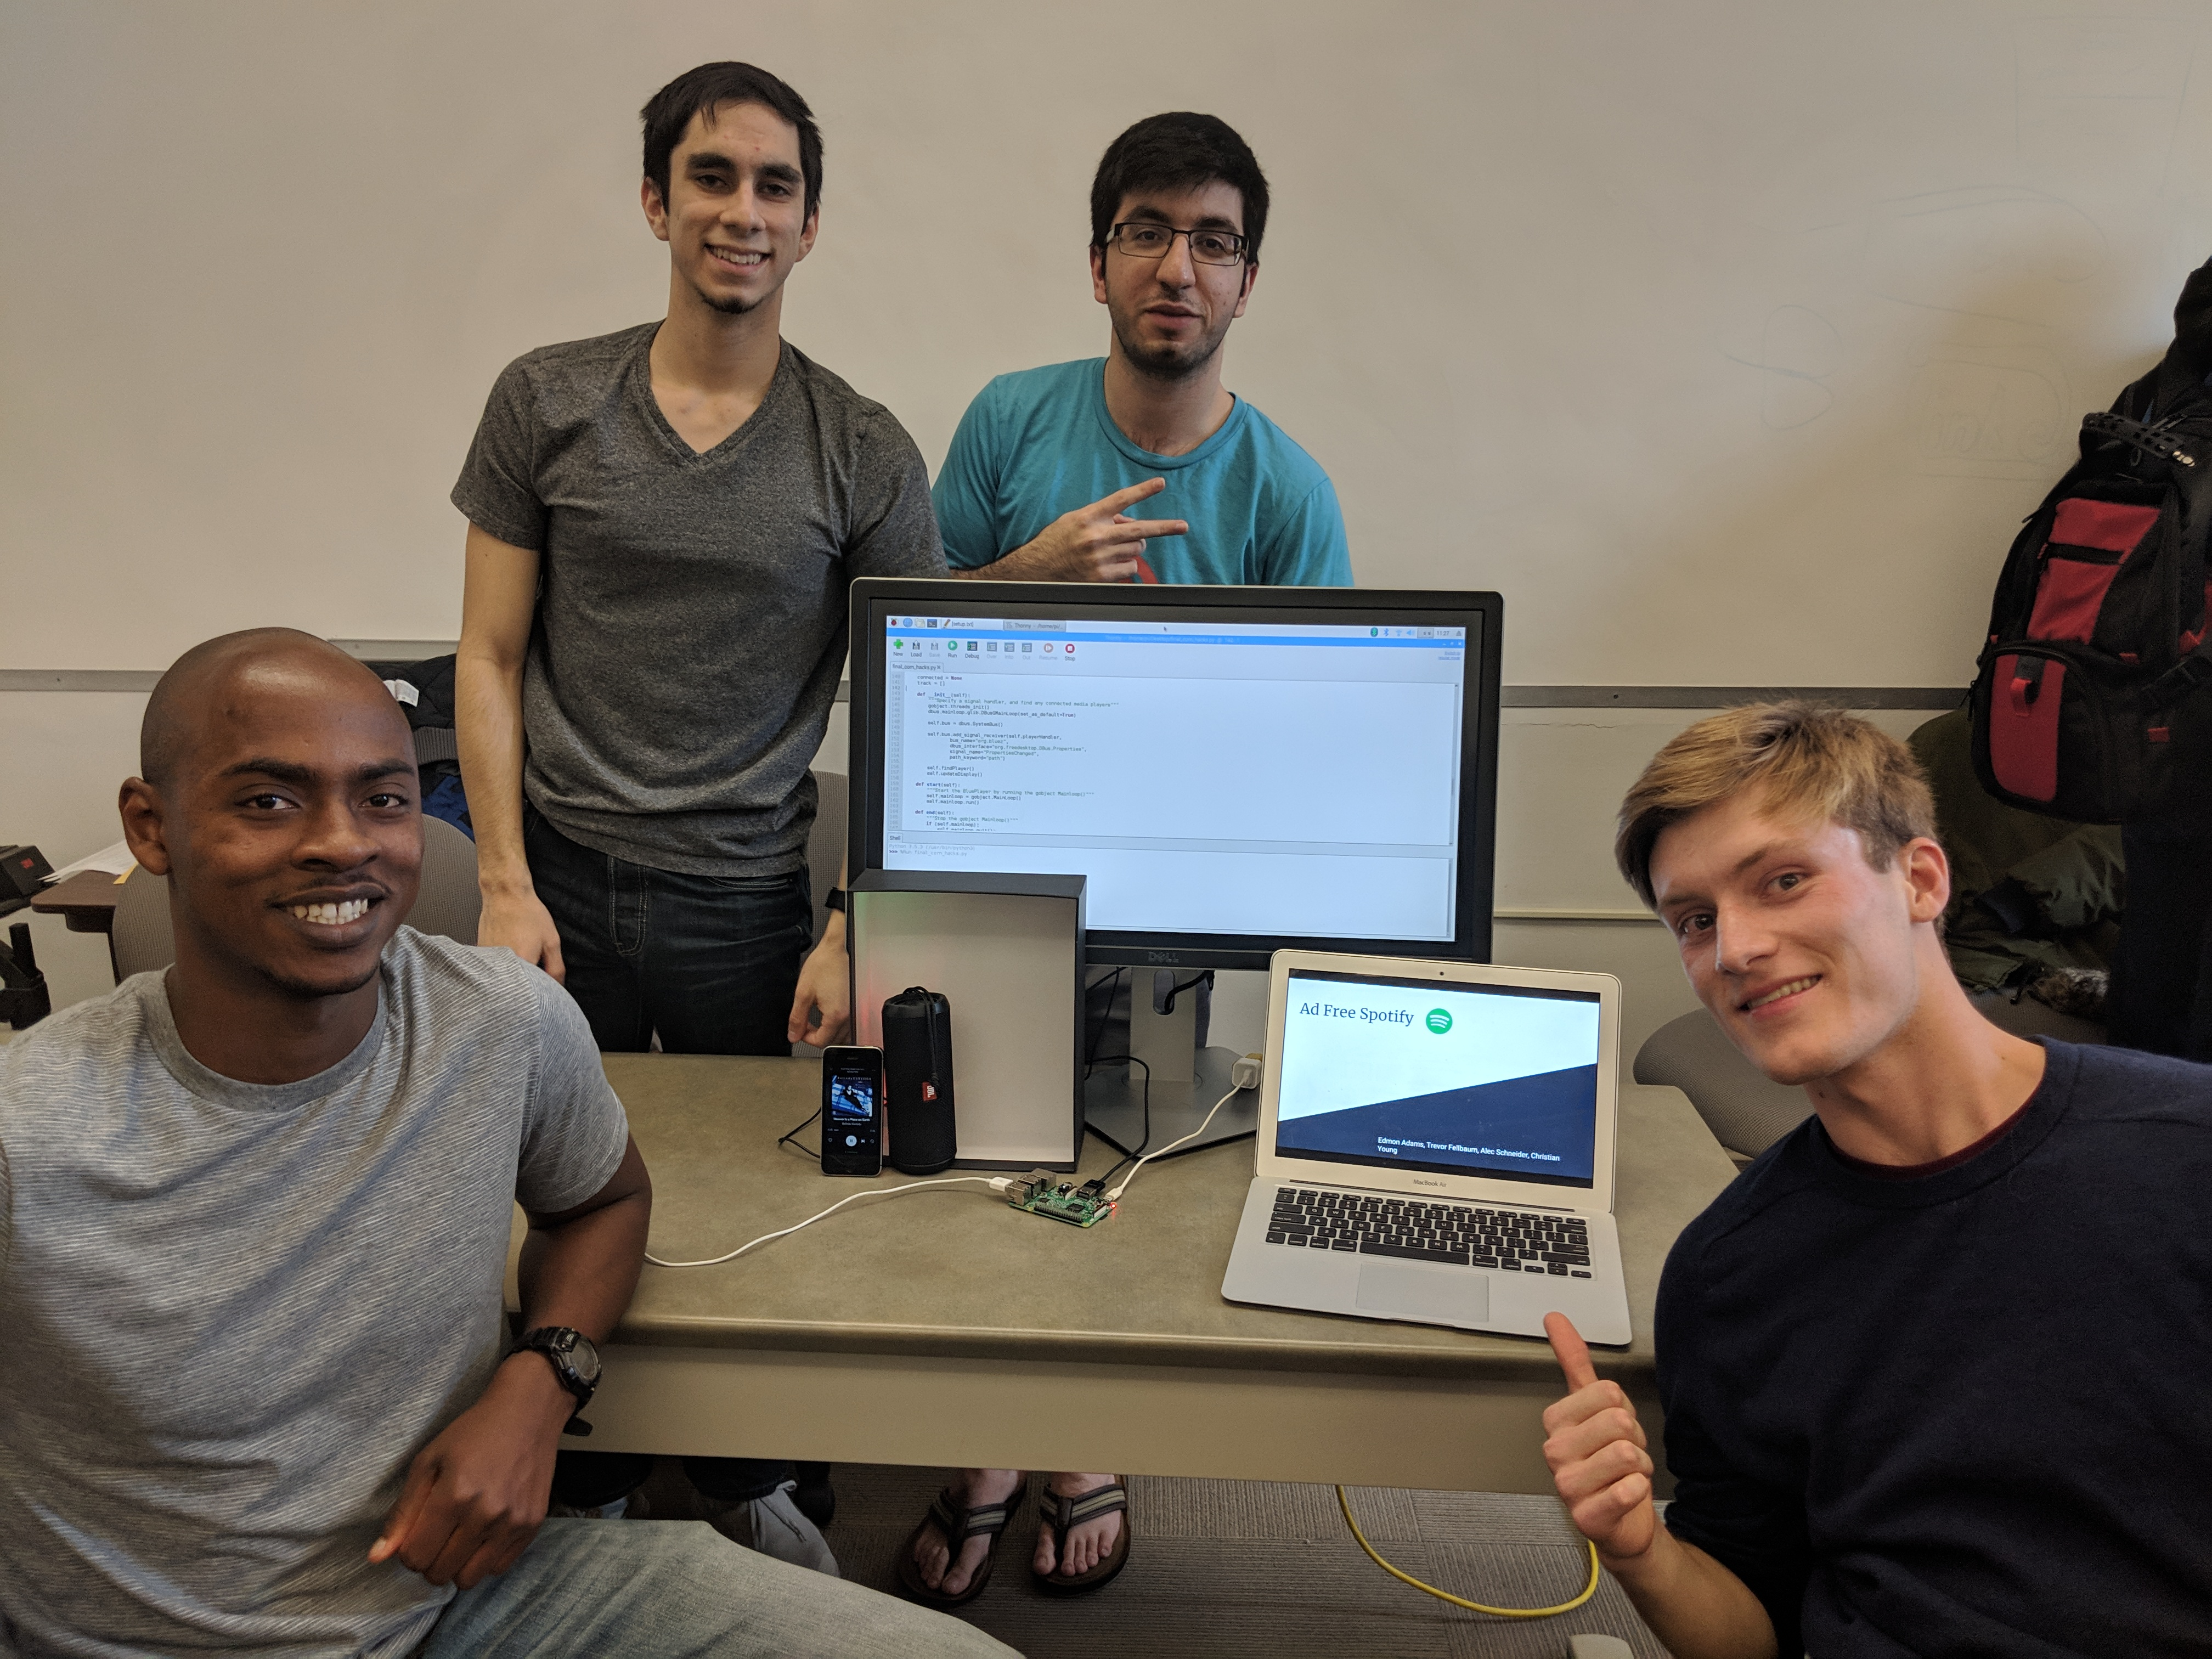 The first place winning CornHacks team, Ad-Free Spotify. Members from left to right: Christian Young, Trevor Fellbaum, Edmon Adams, and Alec Schneider.